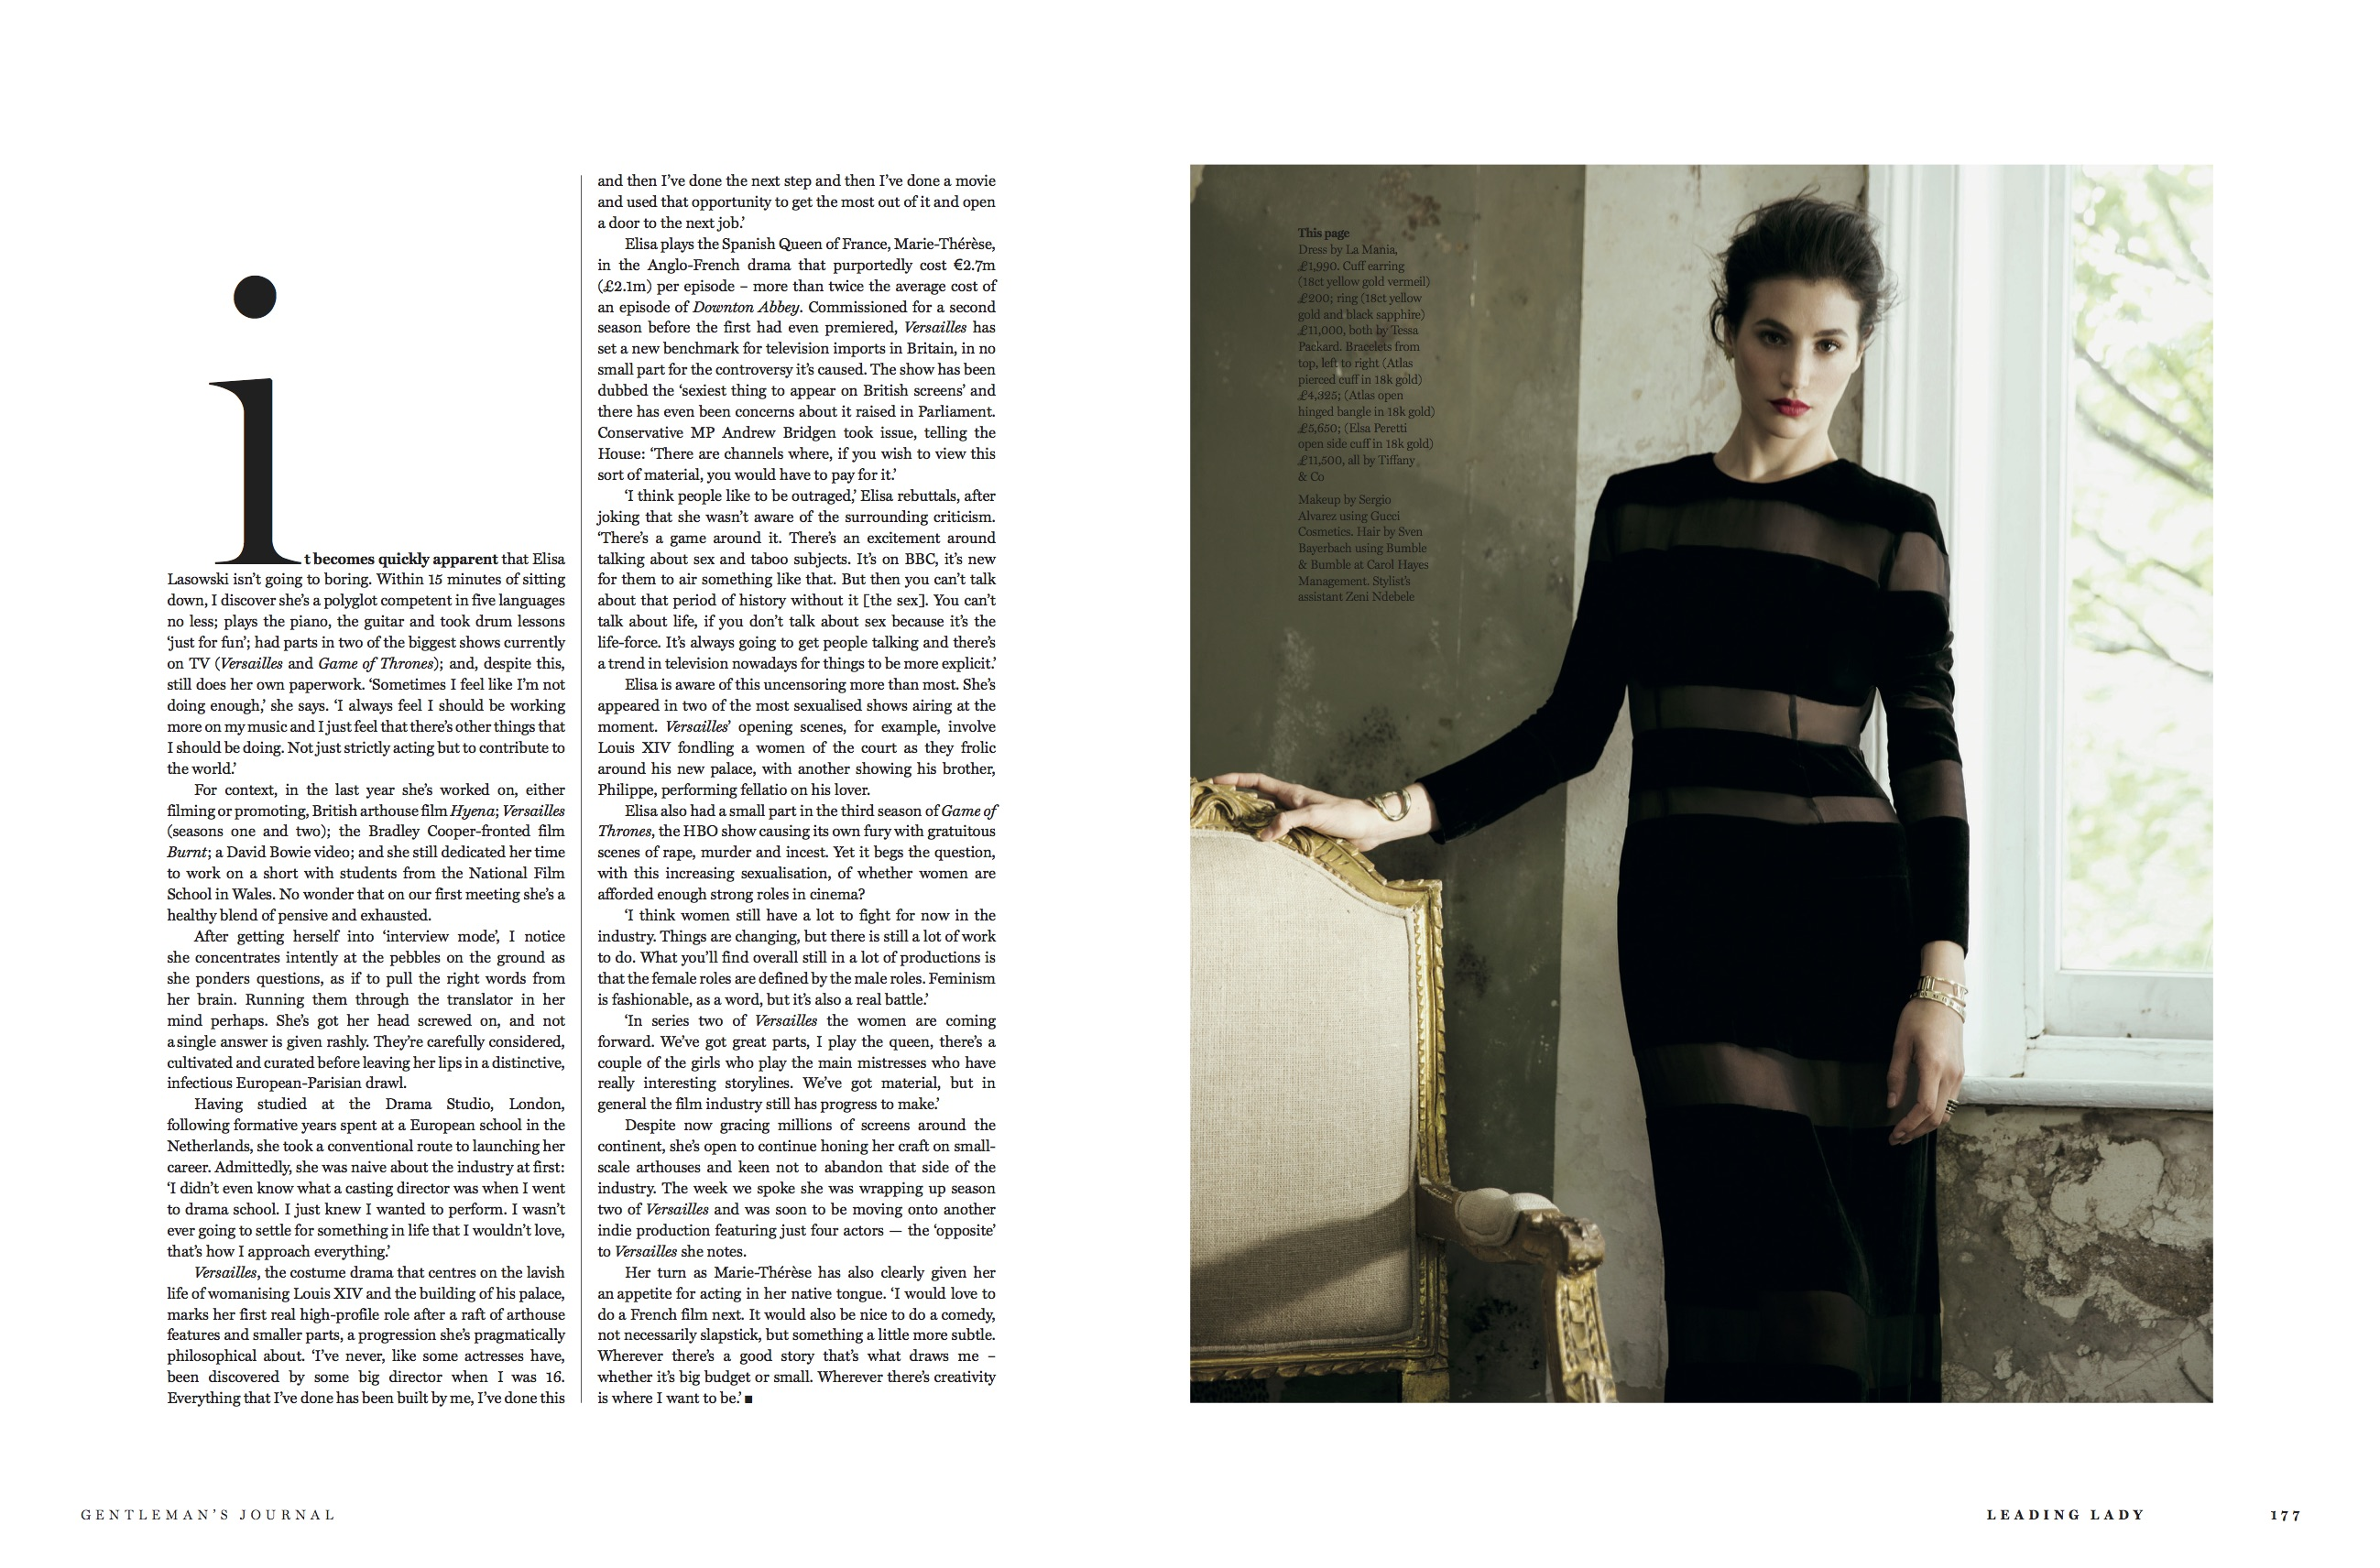 The Gent Journal Leading lady 2